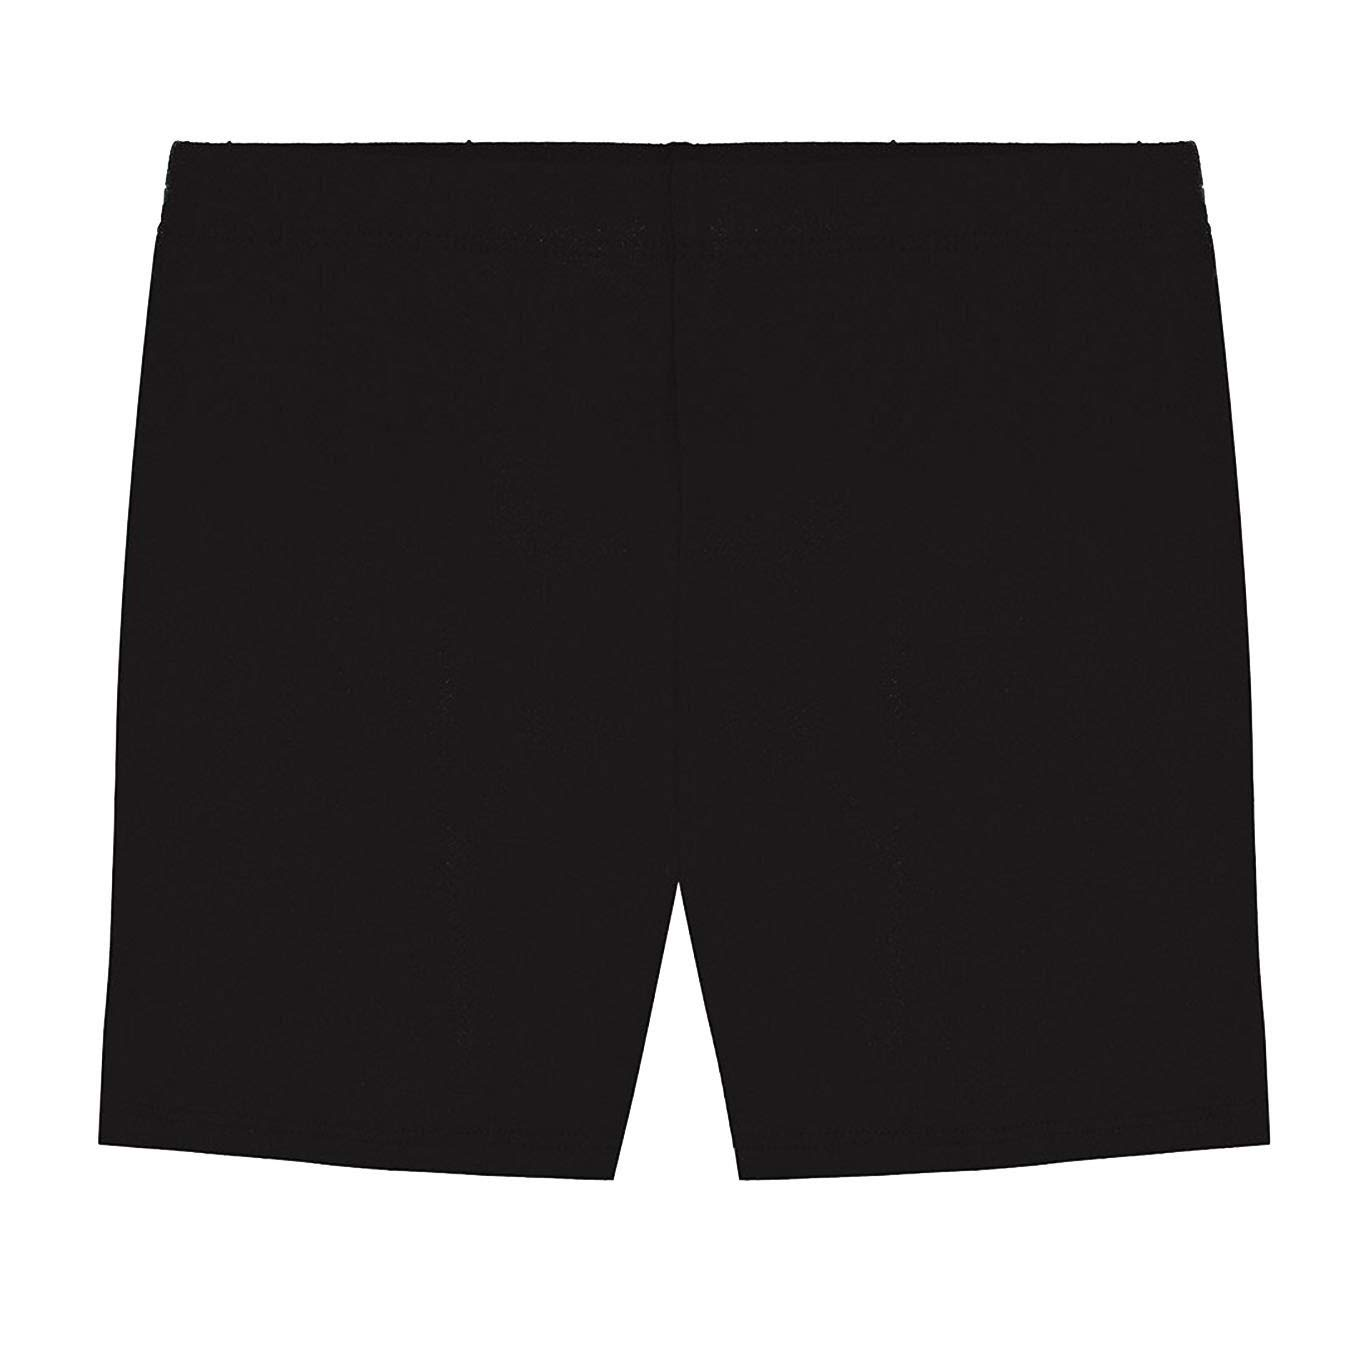 Great for Uniform Free to Live 3 Pack Girls 7-16 Years Old Maxi Skirts